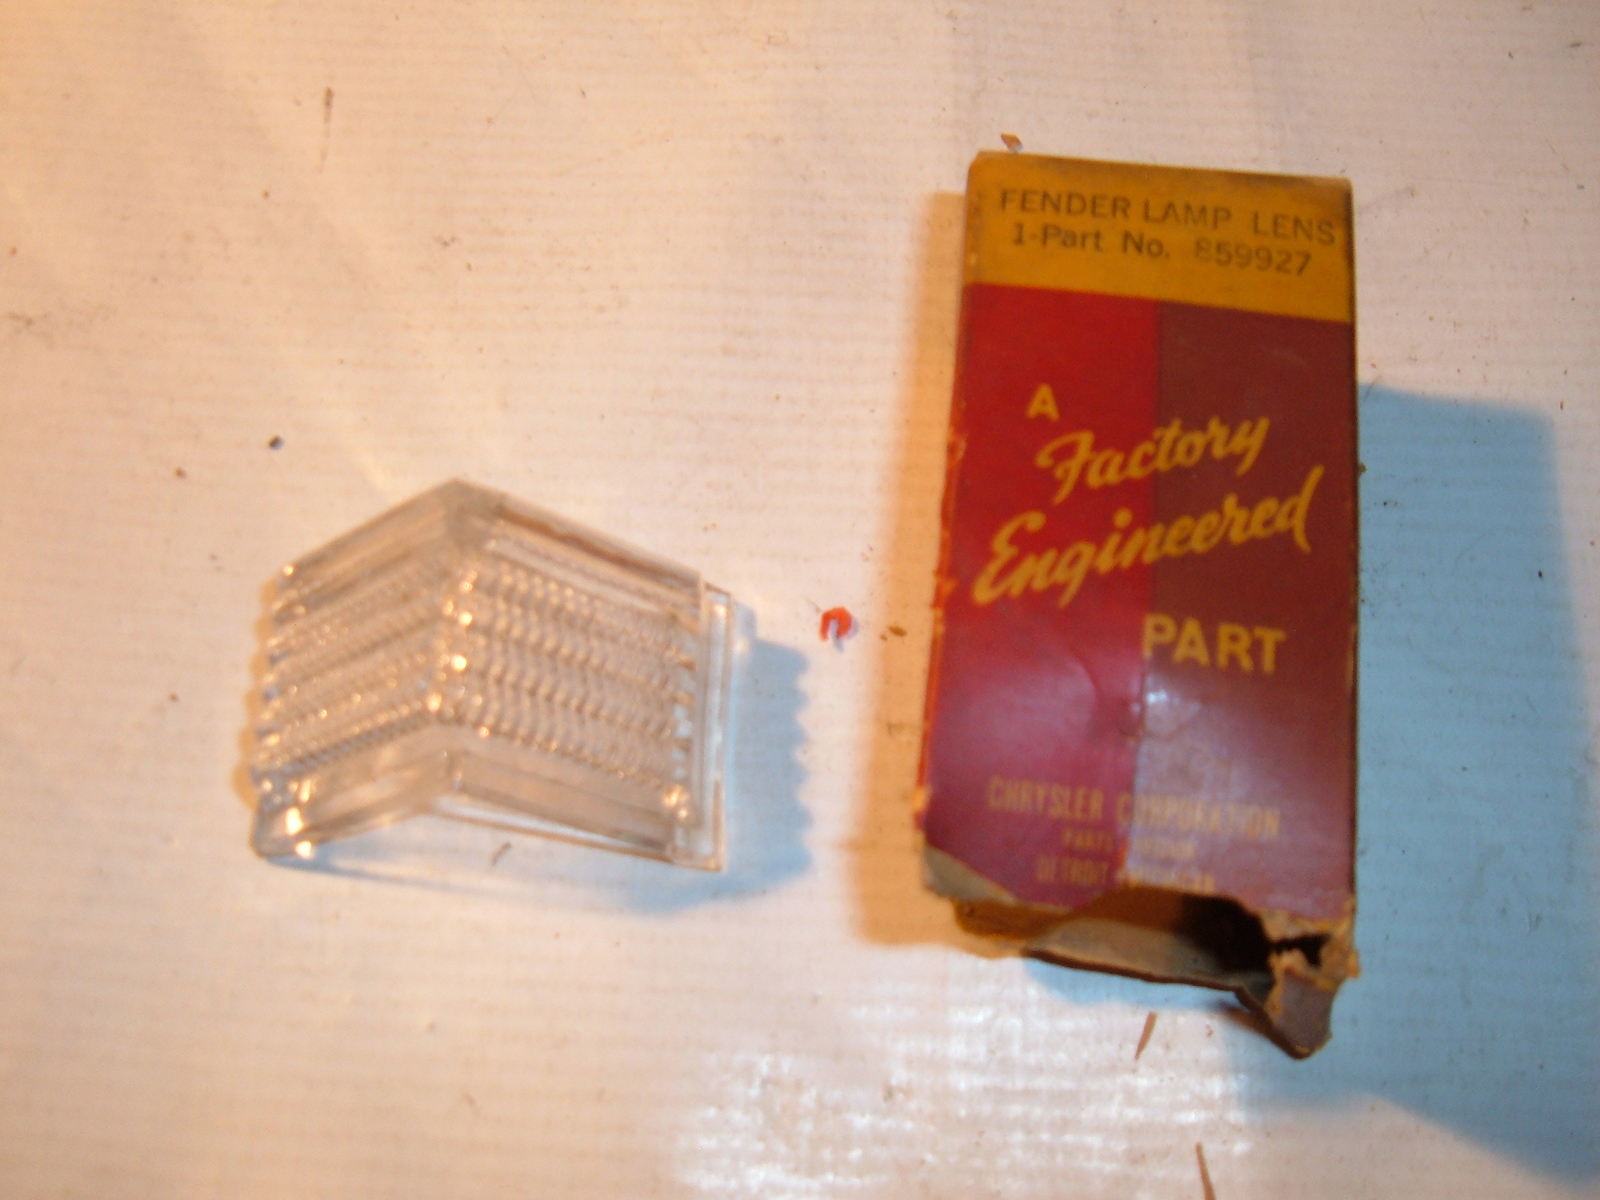 1940 chrysler parking light lens nos mopar # 859927 (z 859927)